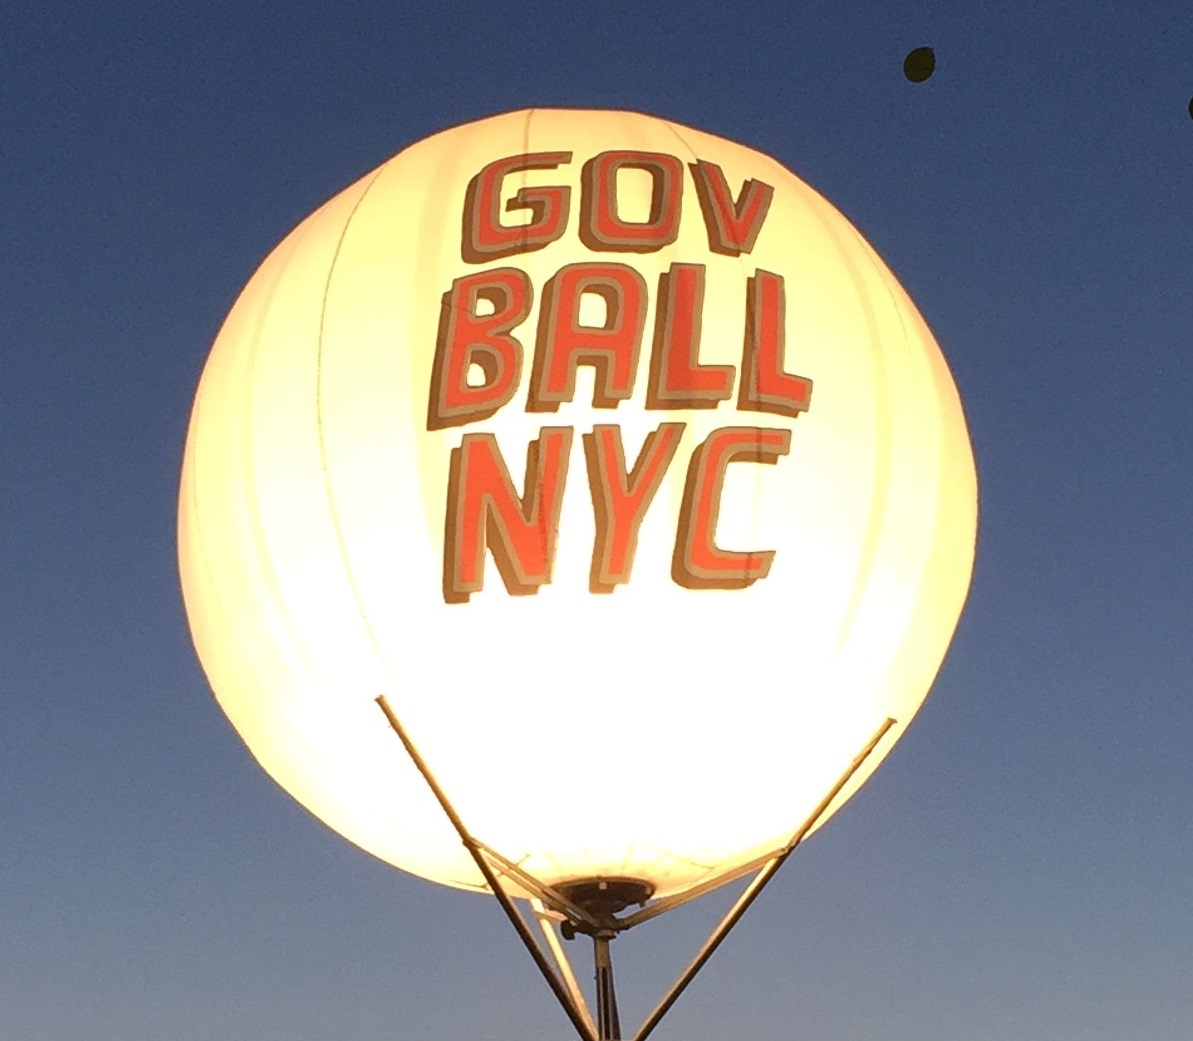 Capalino+Company highlights Corporate Social Responsibility efforts for Governors Ball